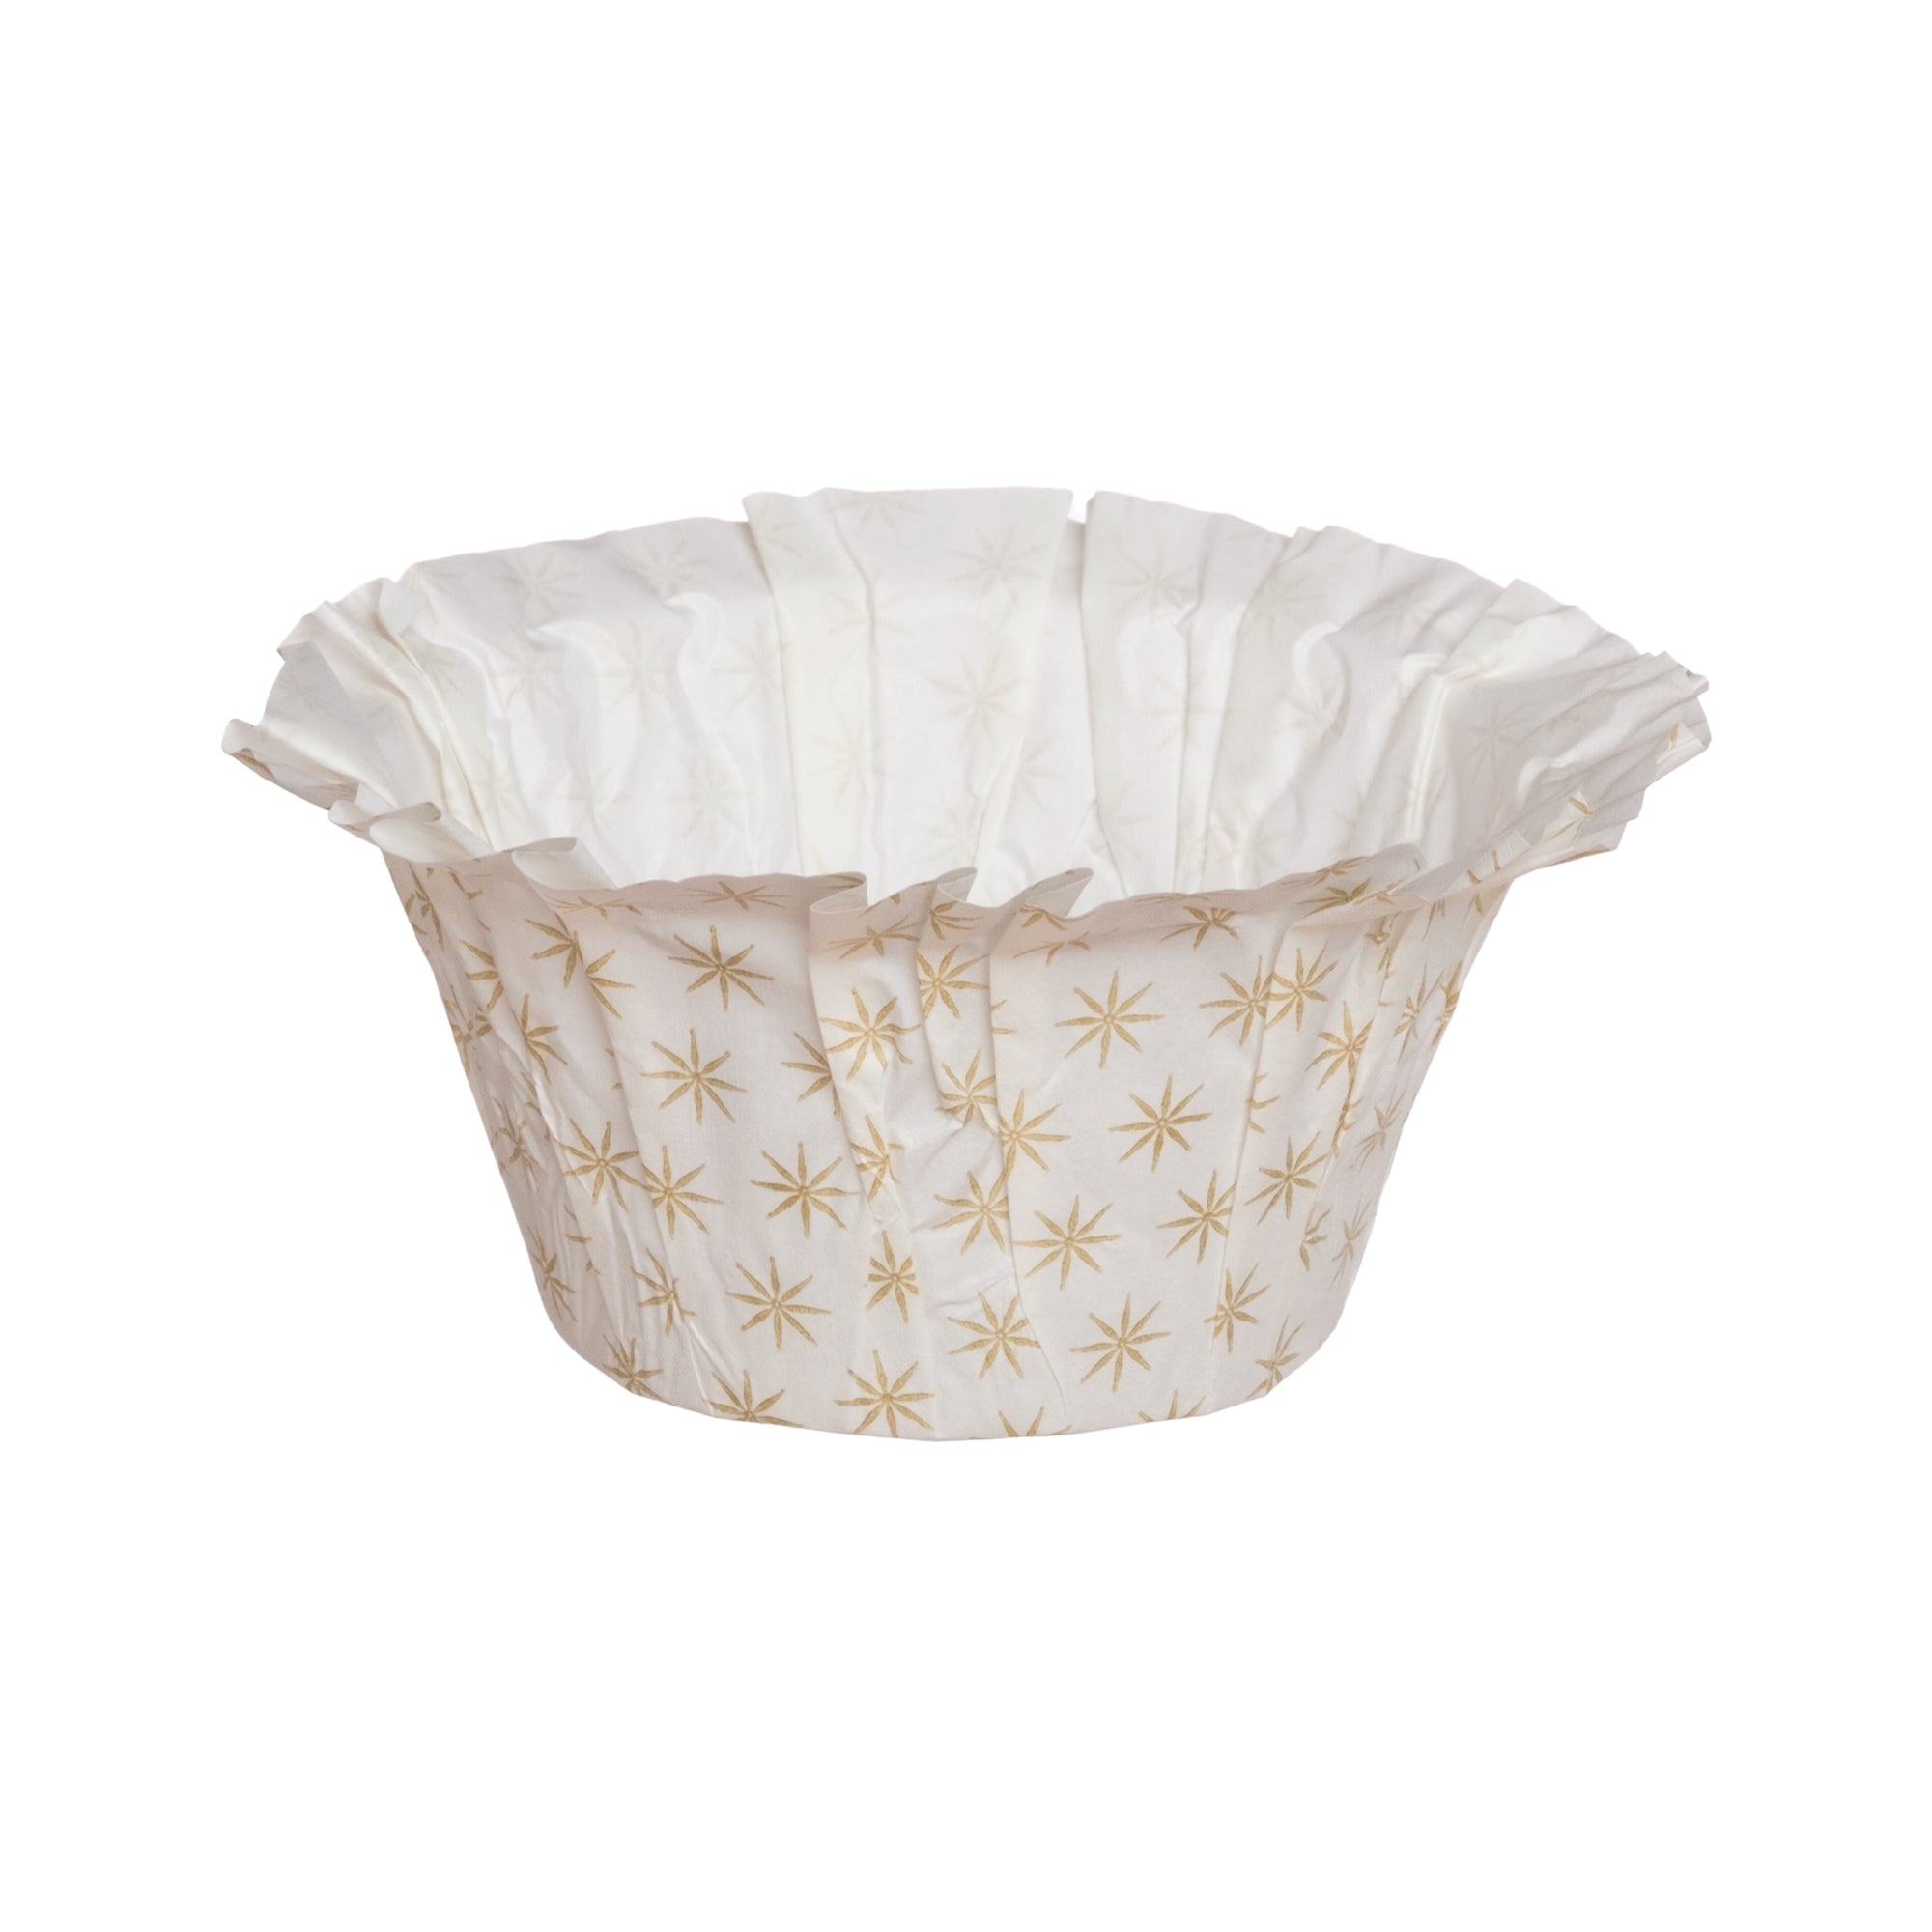 Muffin Baskets, TG0069 - Welcome Home Brands